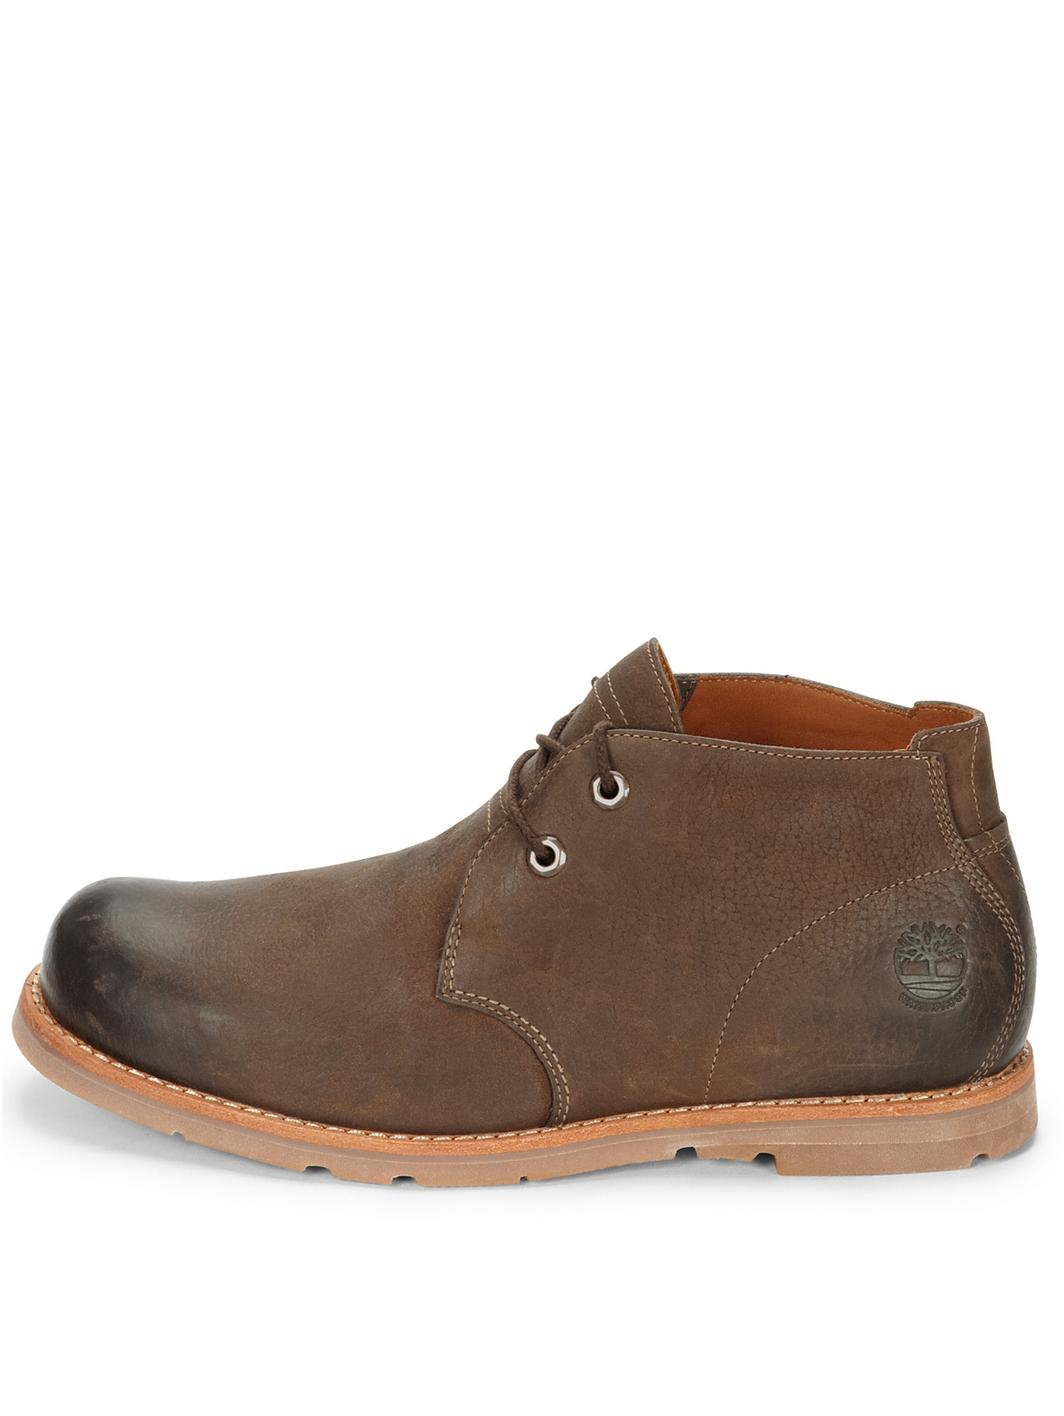 Timberland Brown Slip On Shoes Mens